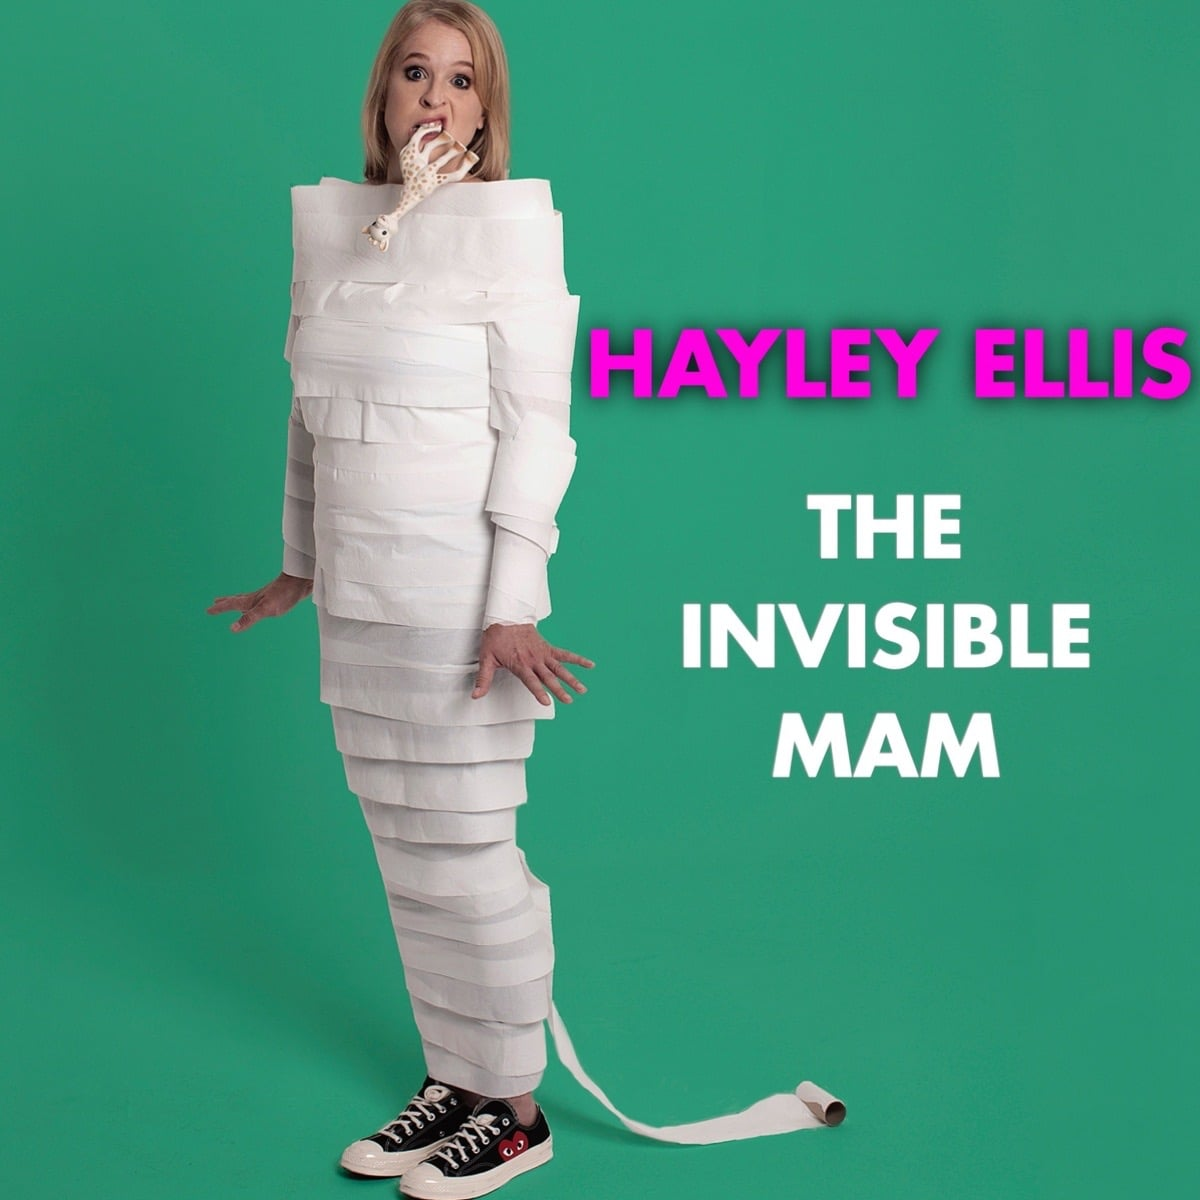 Hayley Ellis The Invisible Mam